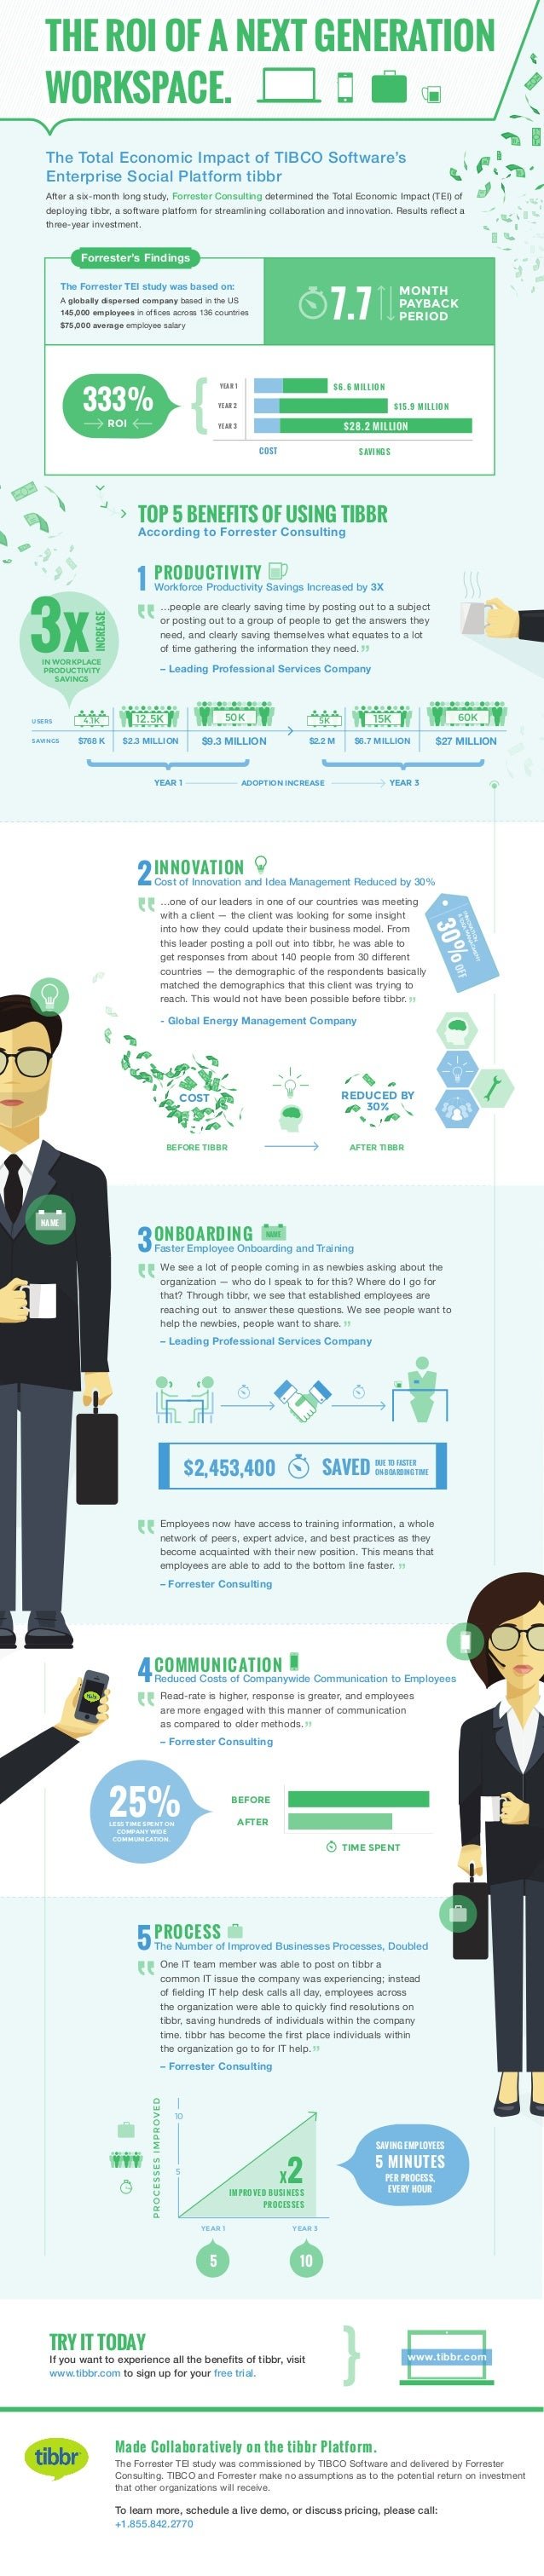 The ROI of a Next Generation Workspace